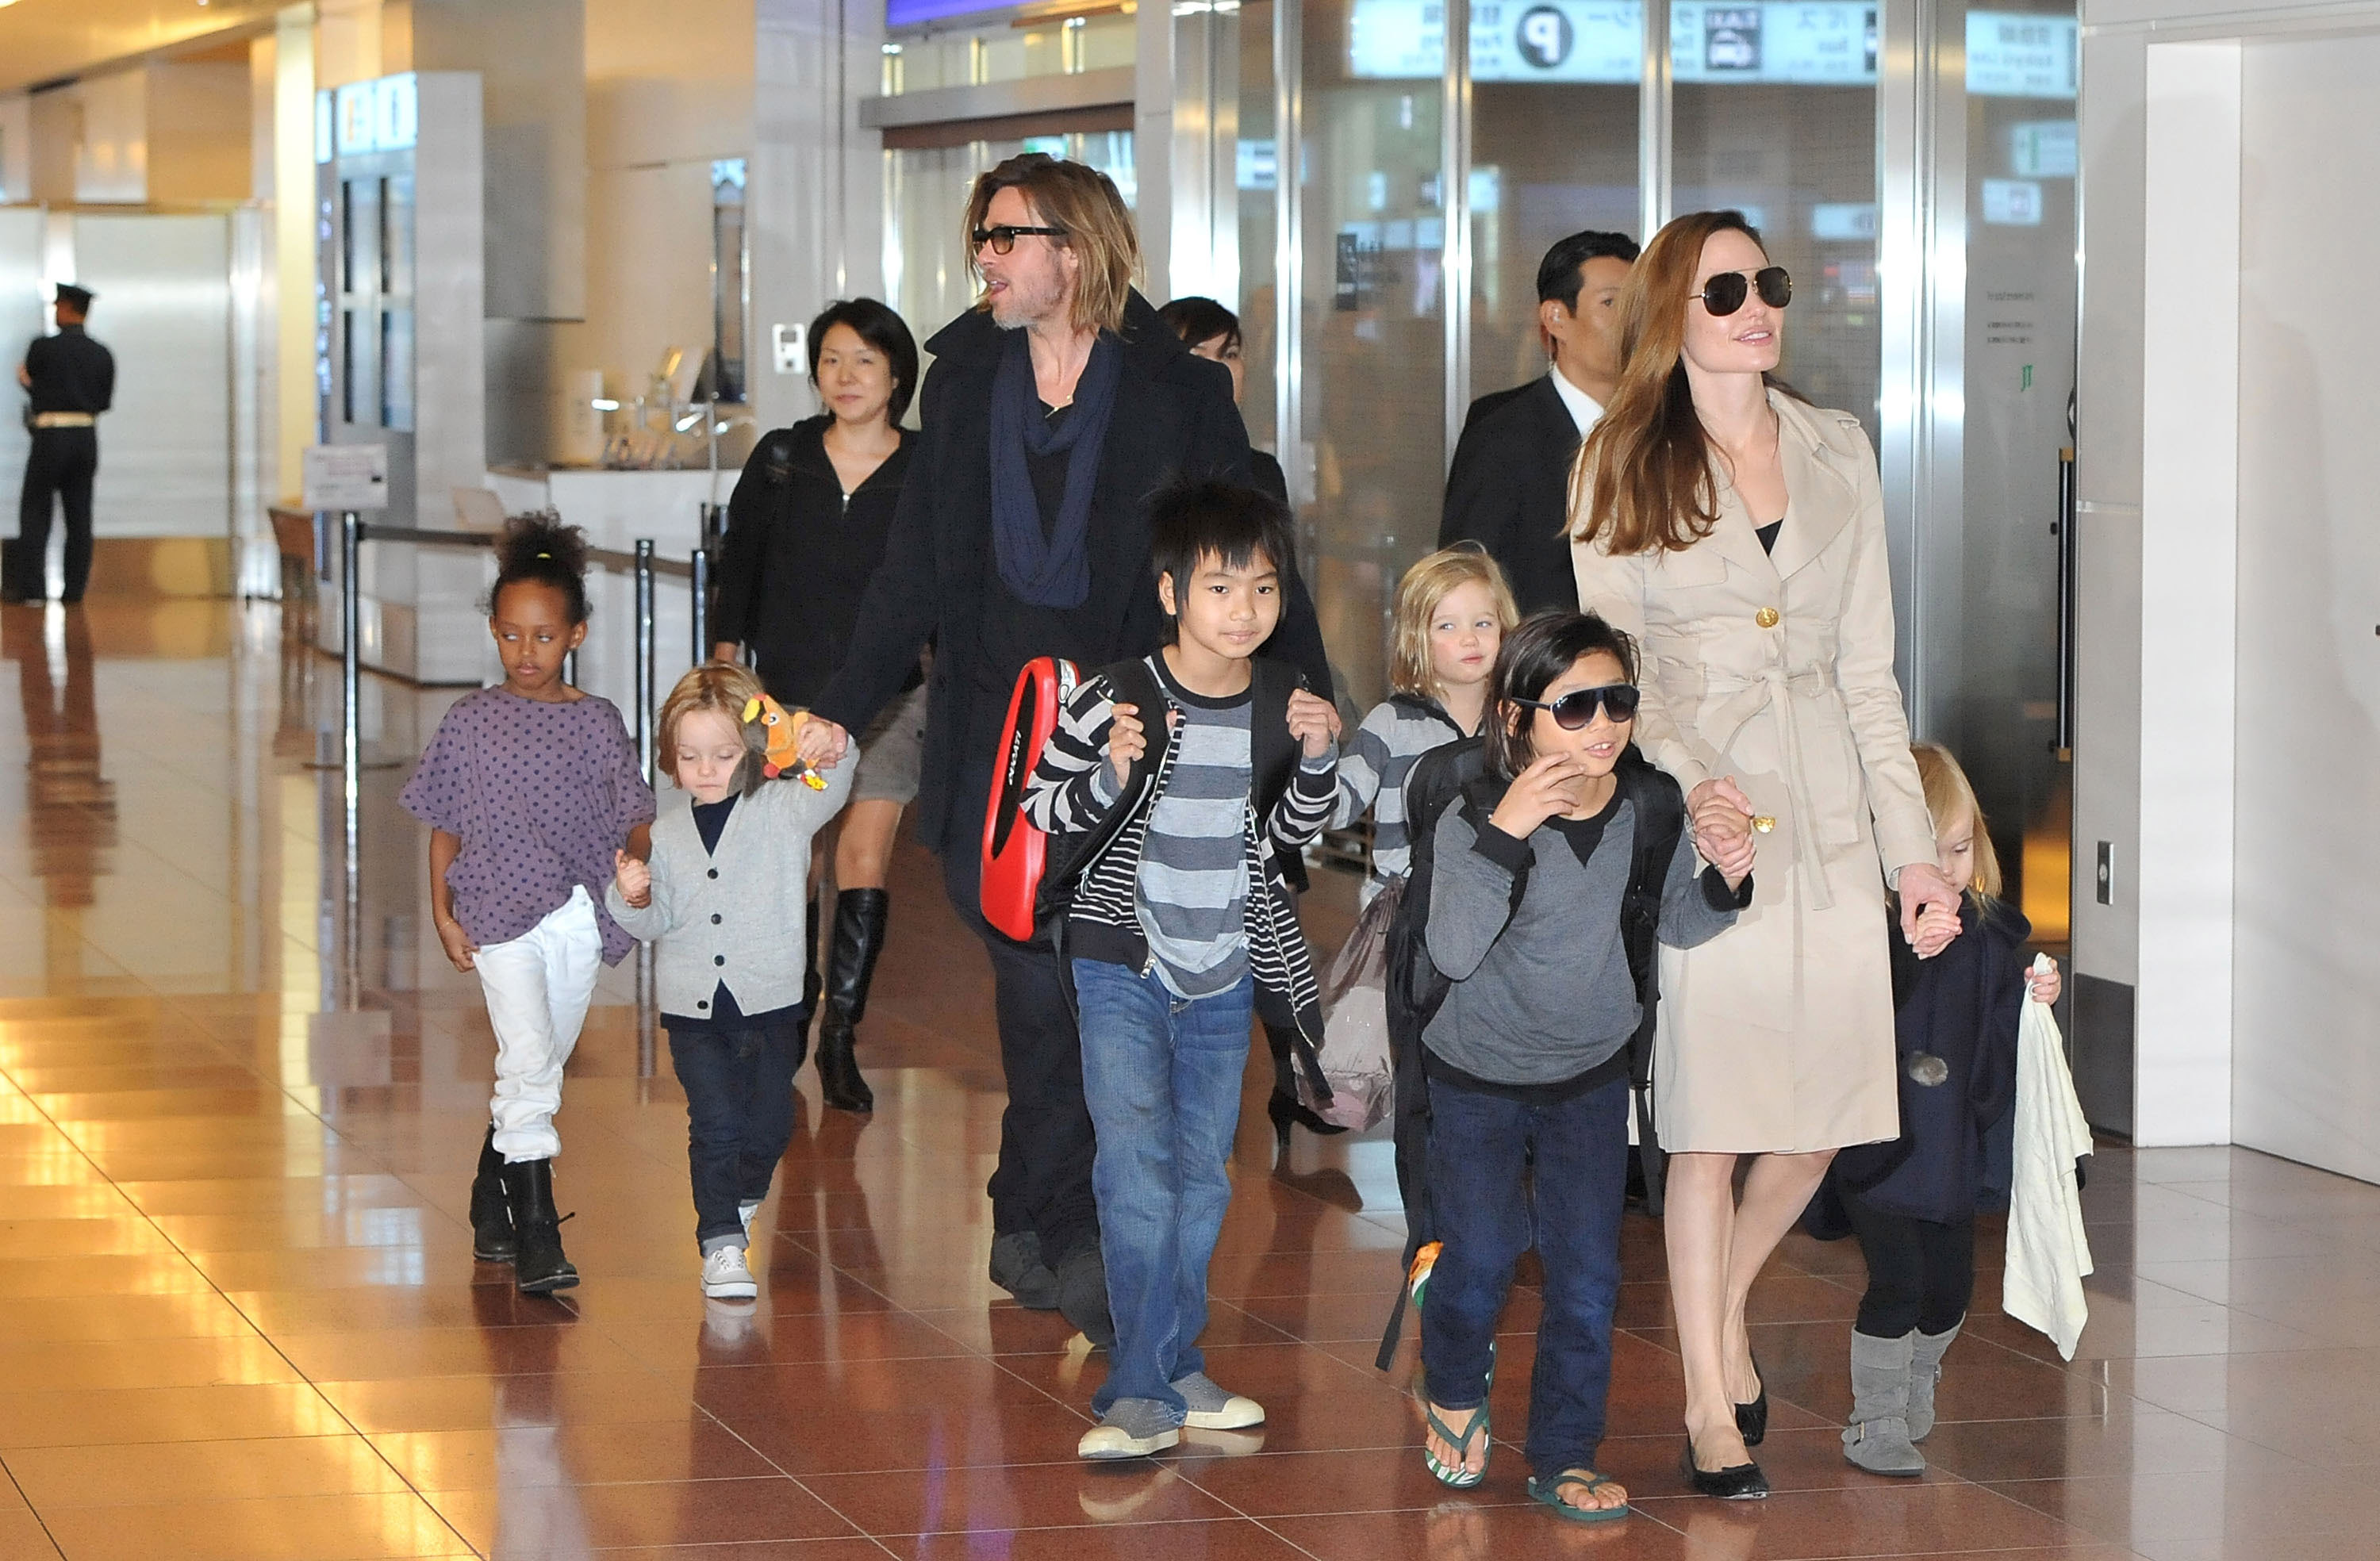 Angelina was in the front while Brad was just a few steps behind.